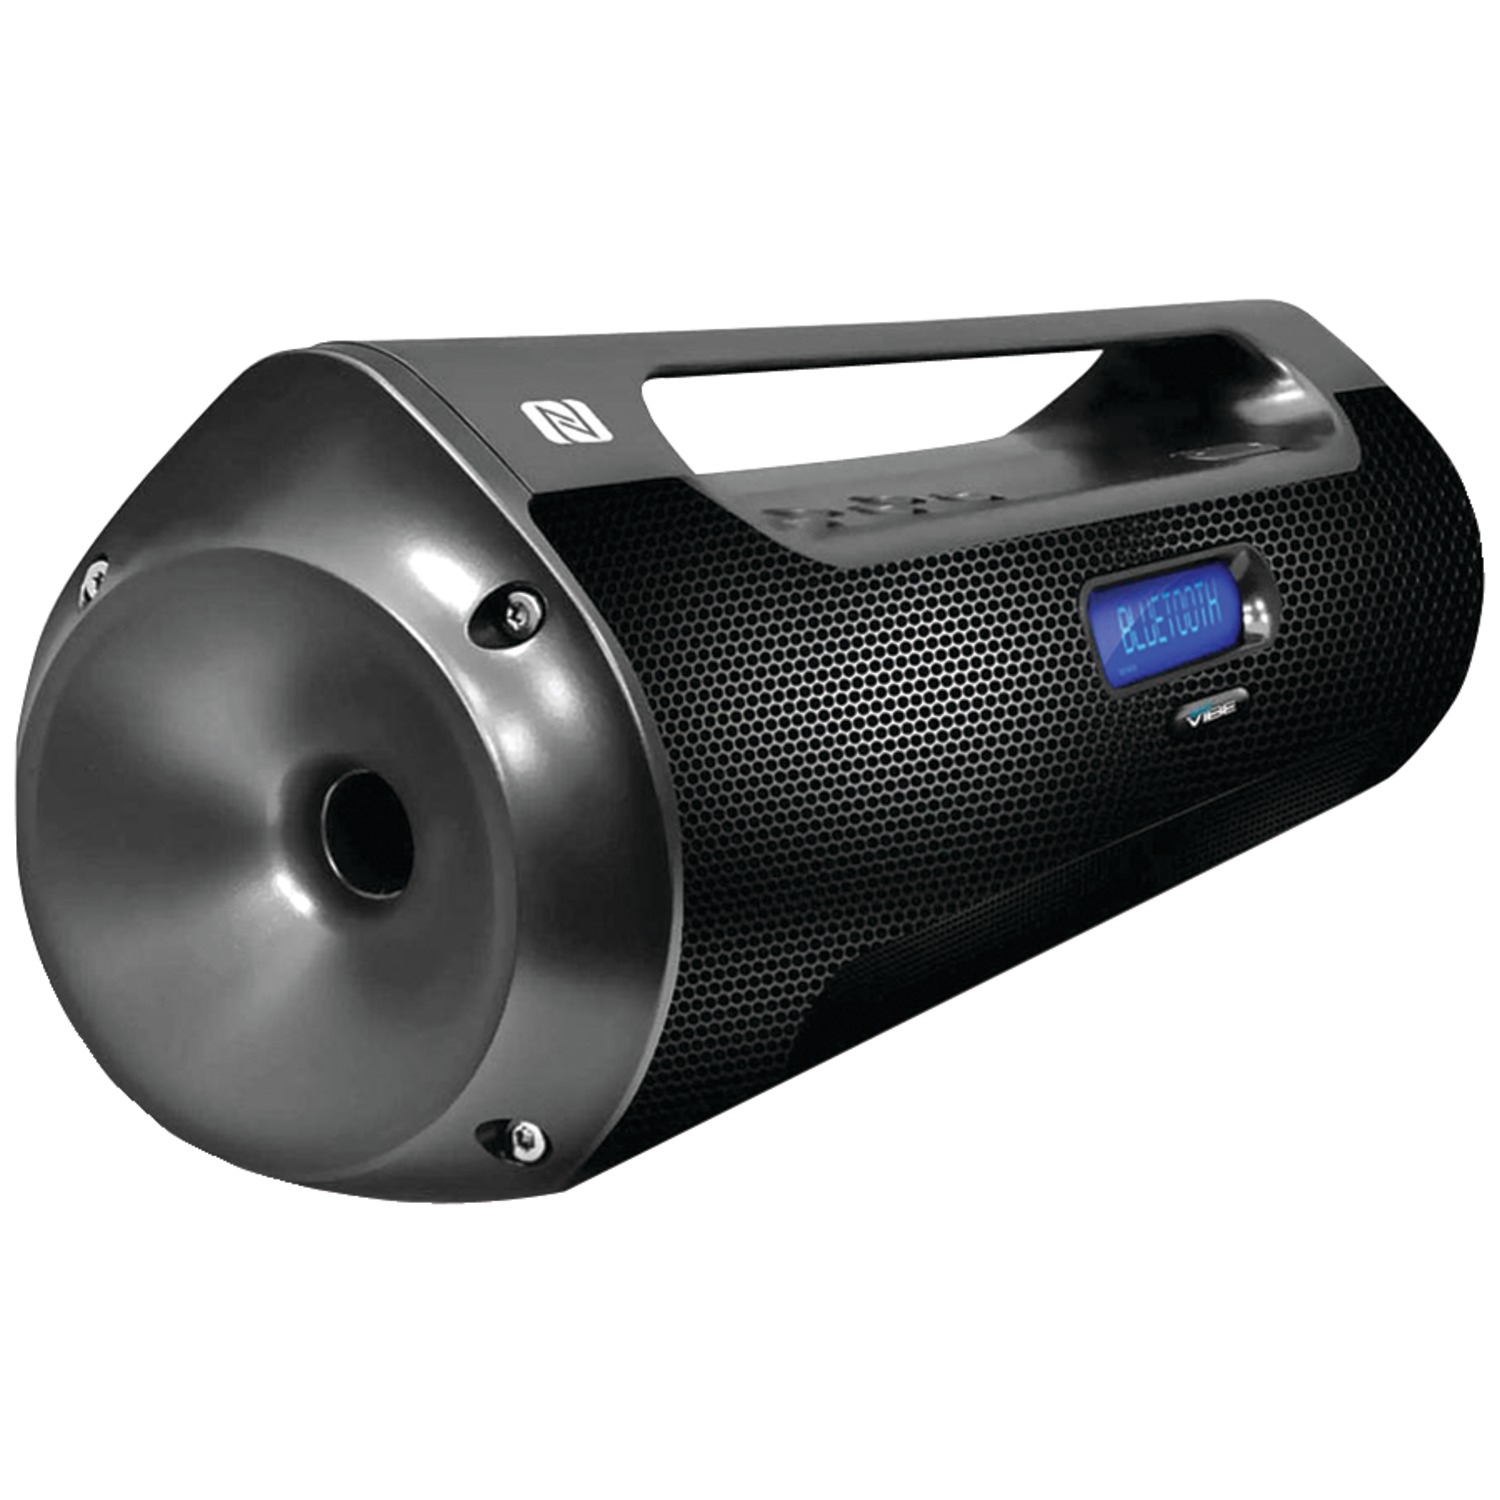 Pyle Pro PBMSPG50 Street Vibe Portable Bluetooth Boombox Speaker System with NFC by Pyle